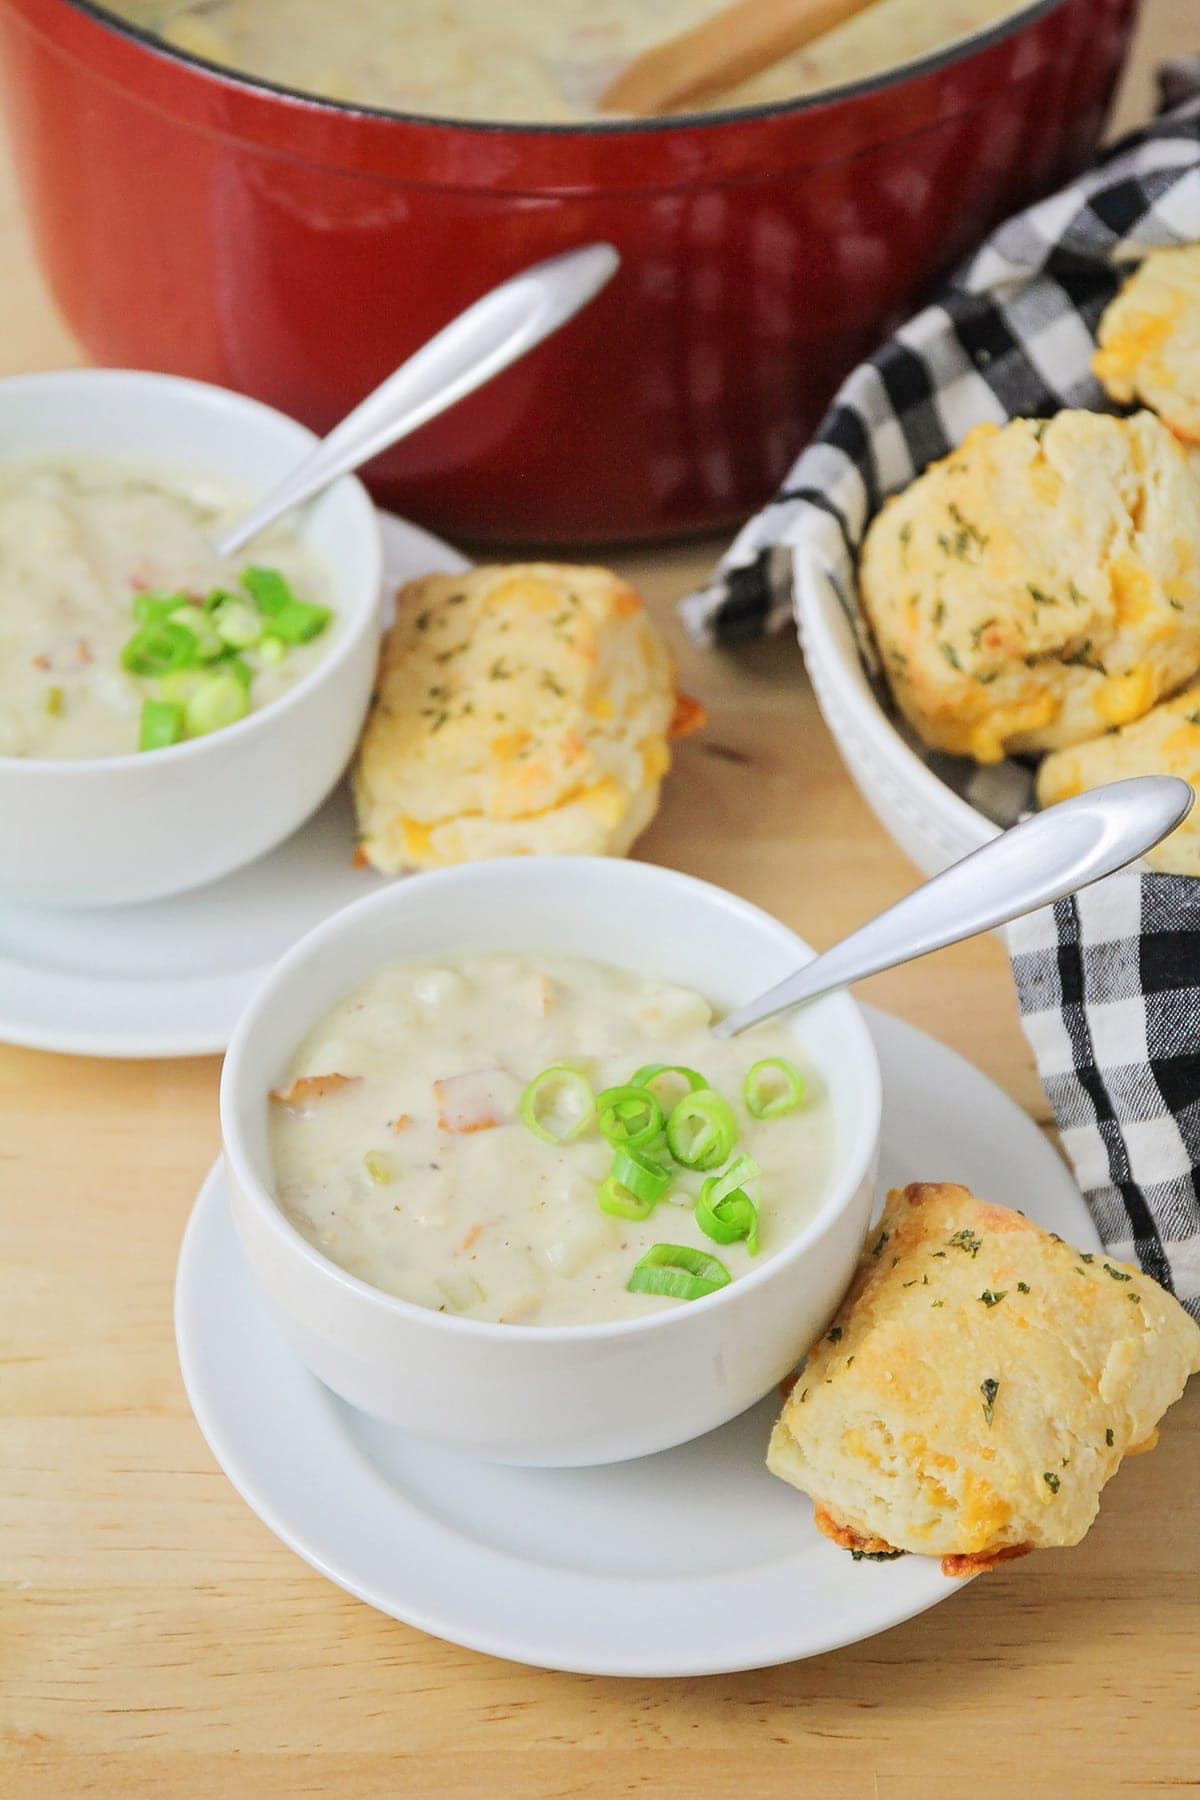 homemade clam chowder topped with green onions